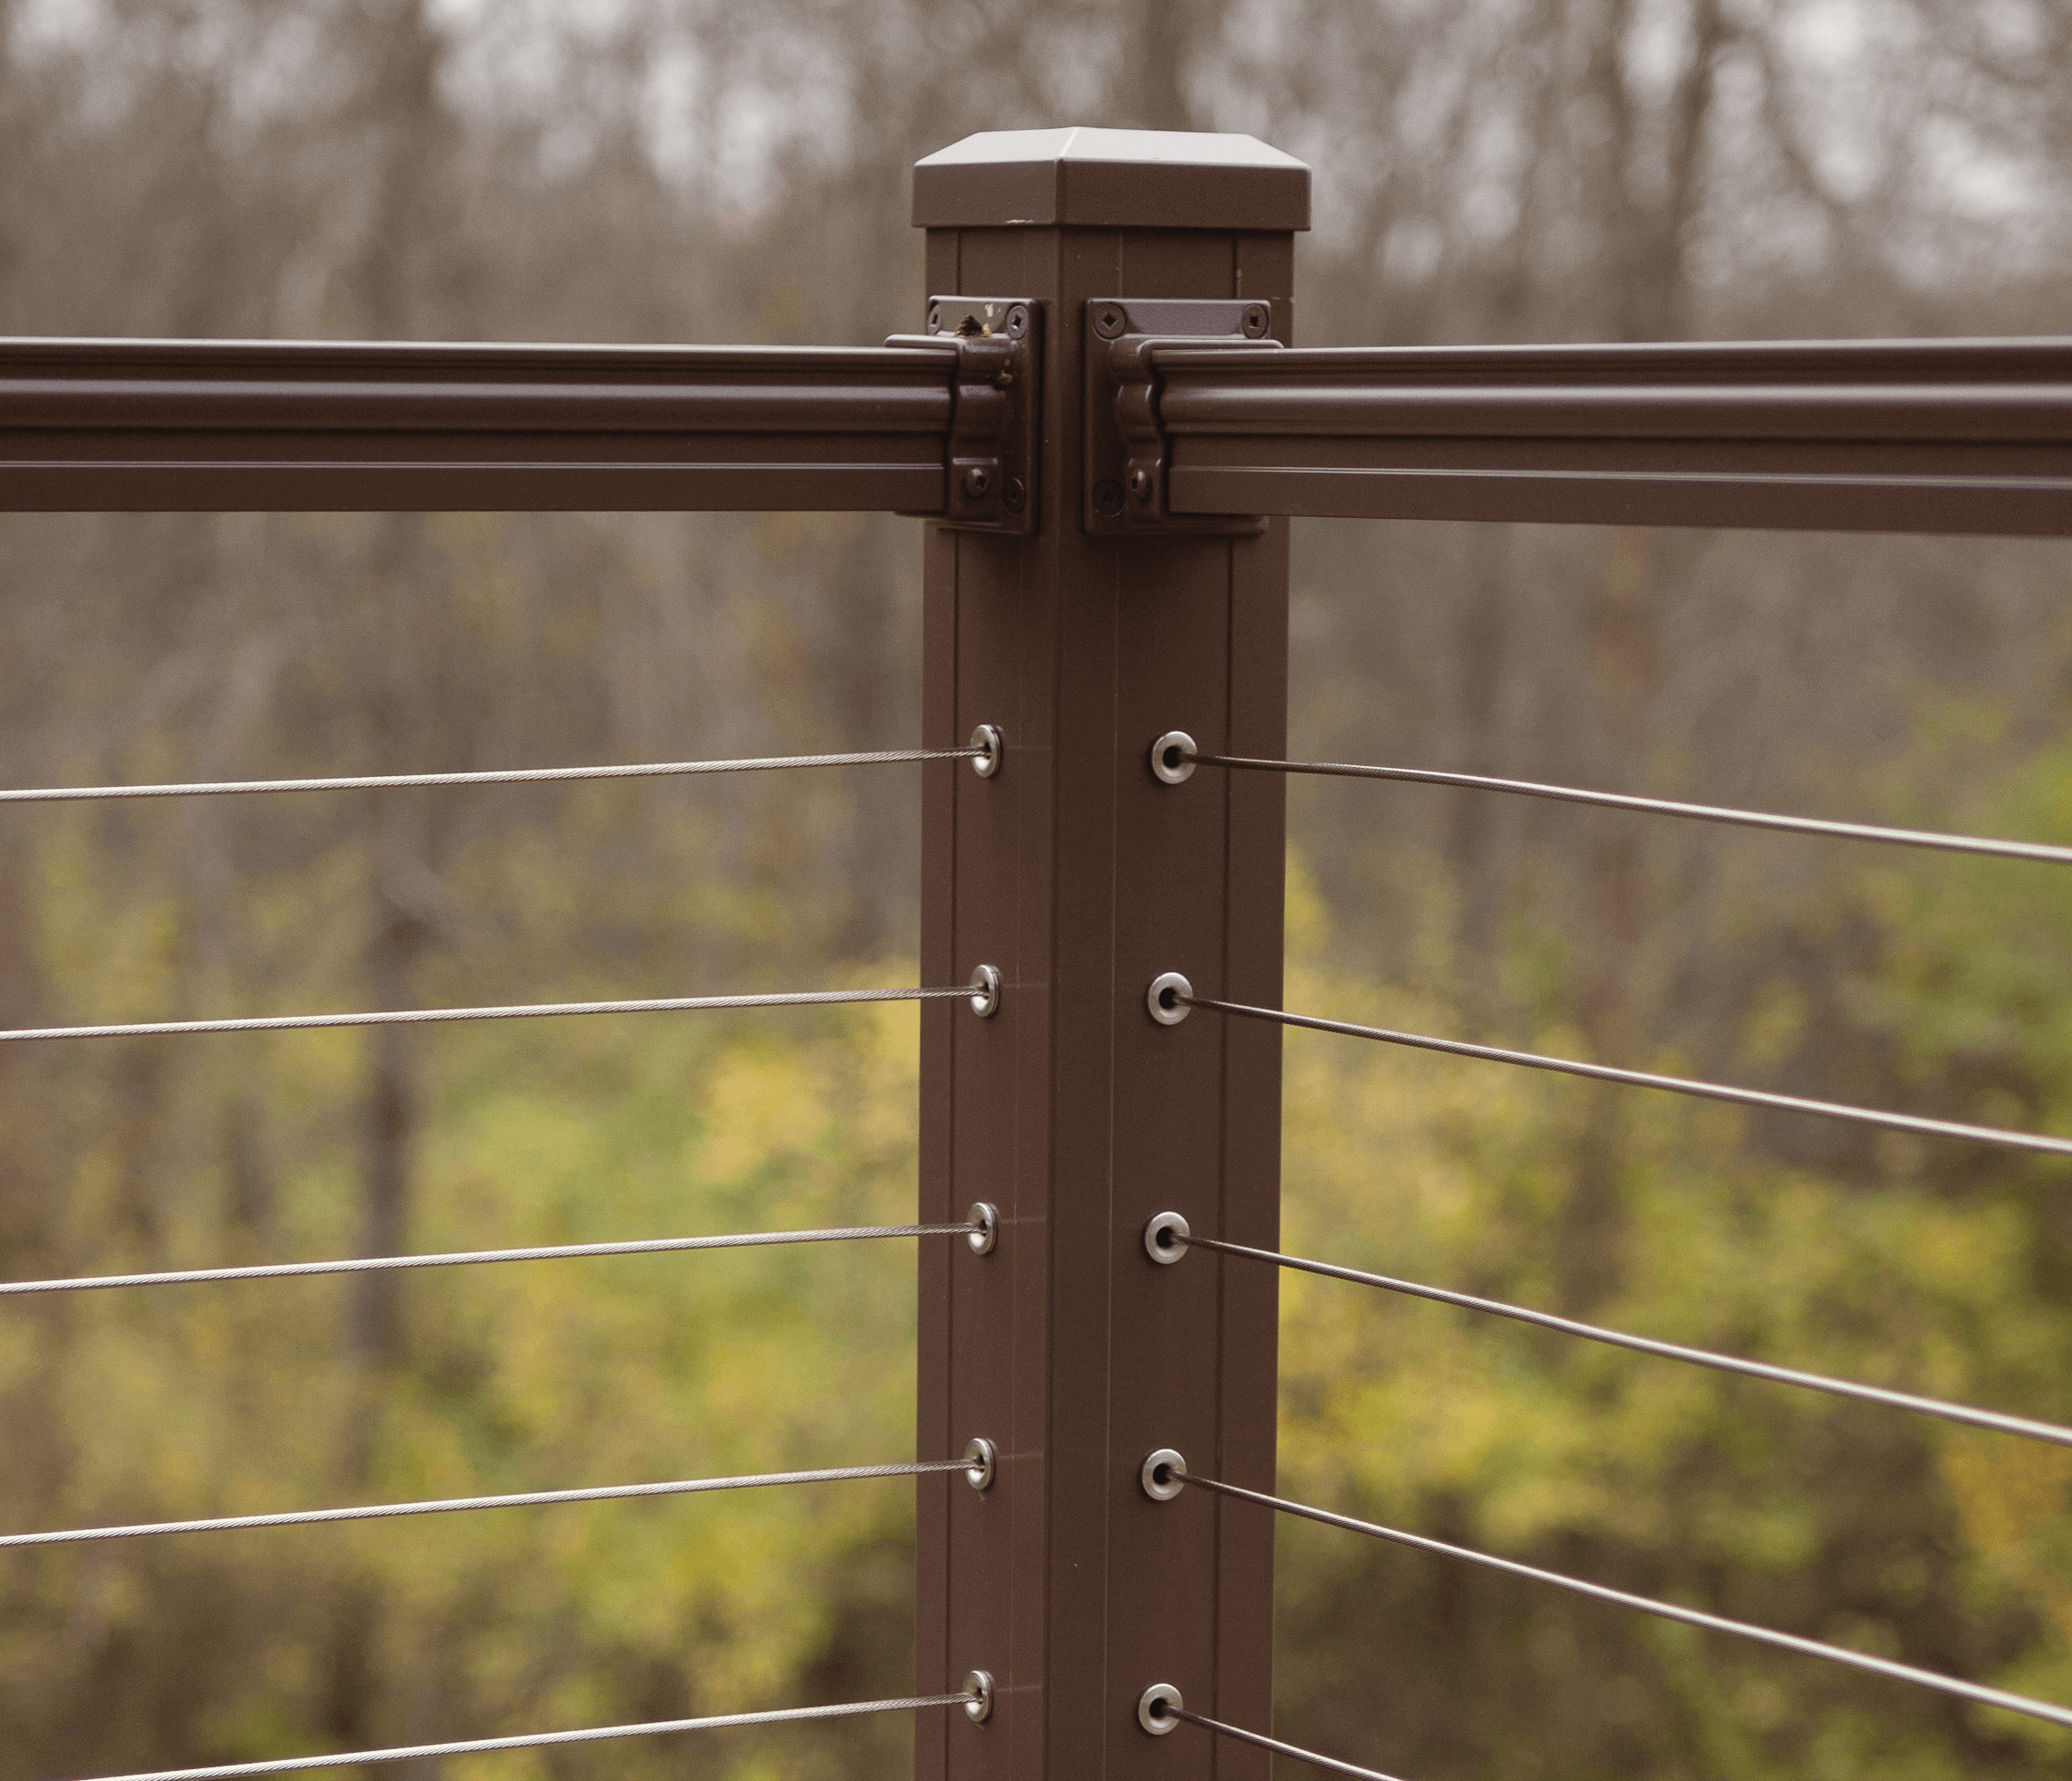 Key-Link Fencing & Railing - Horizontal Cable Railing Infill System